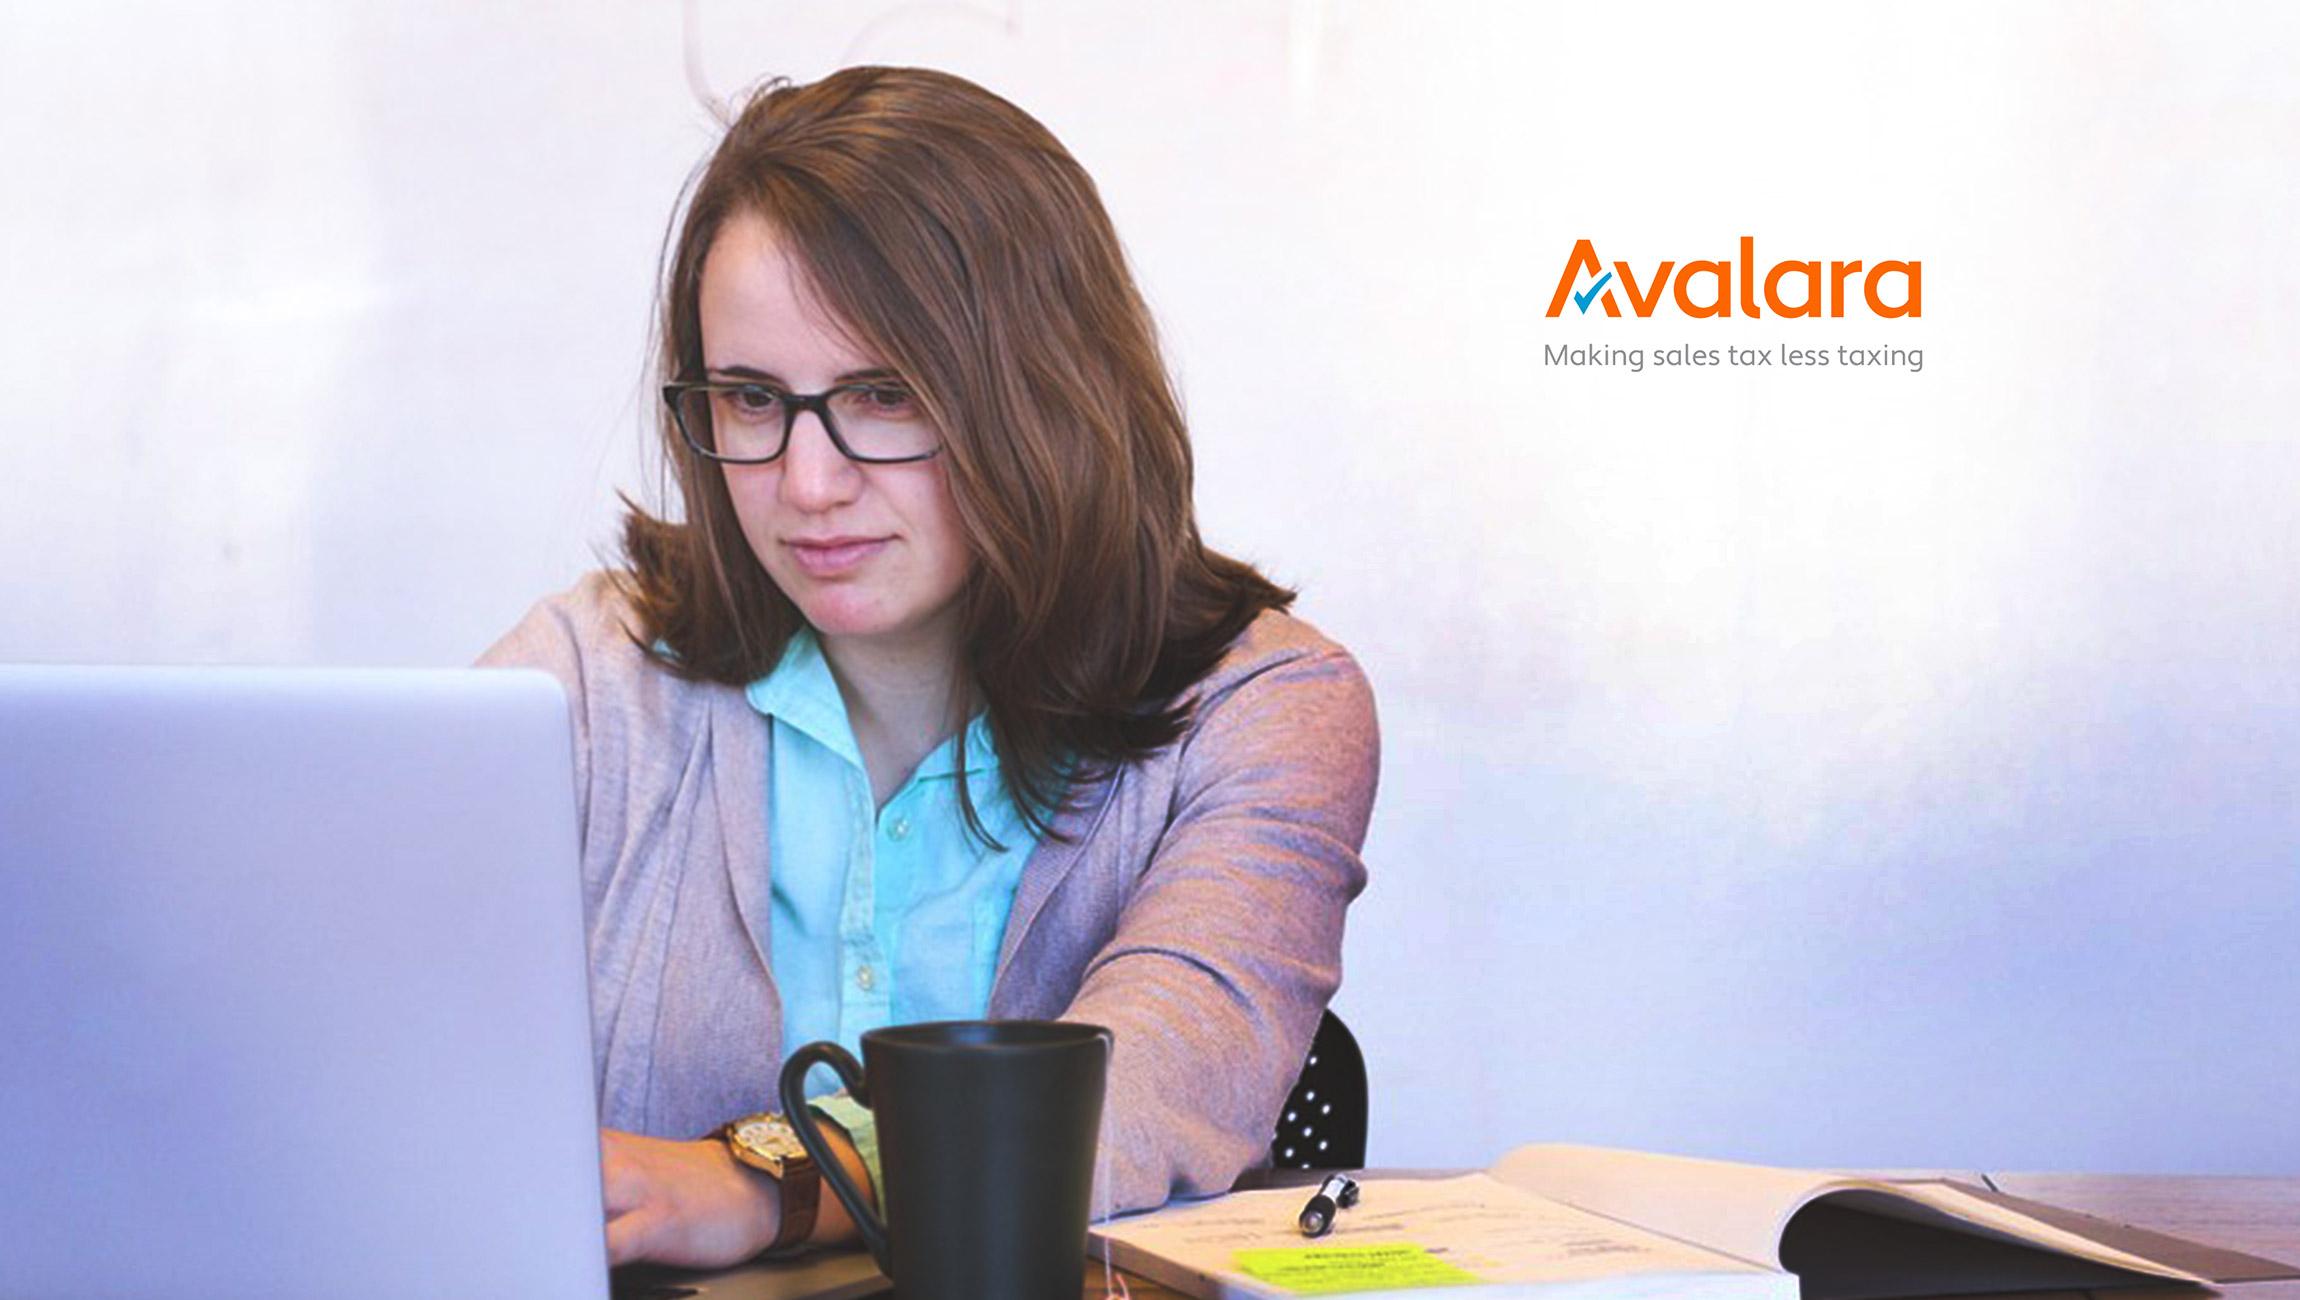 Avalara Announces 41 Newly-Certified Integrations into Business Apps